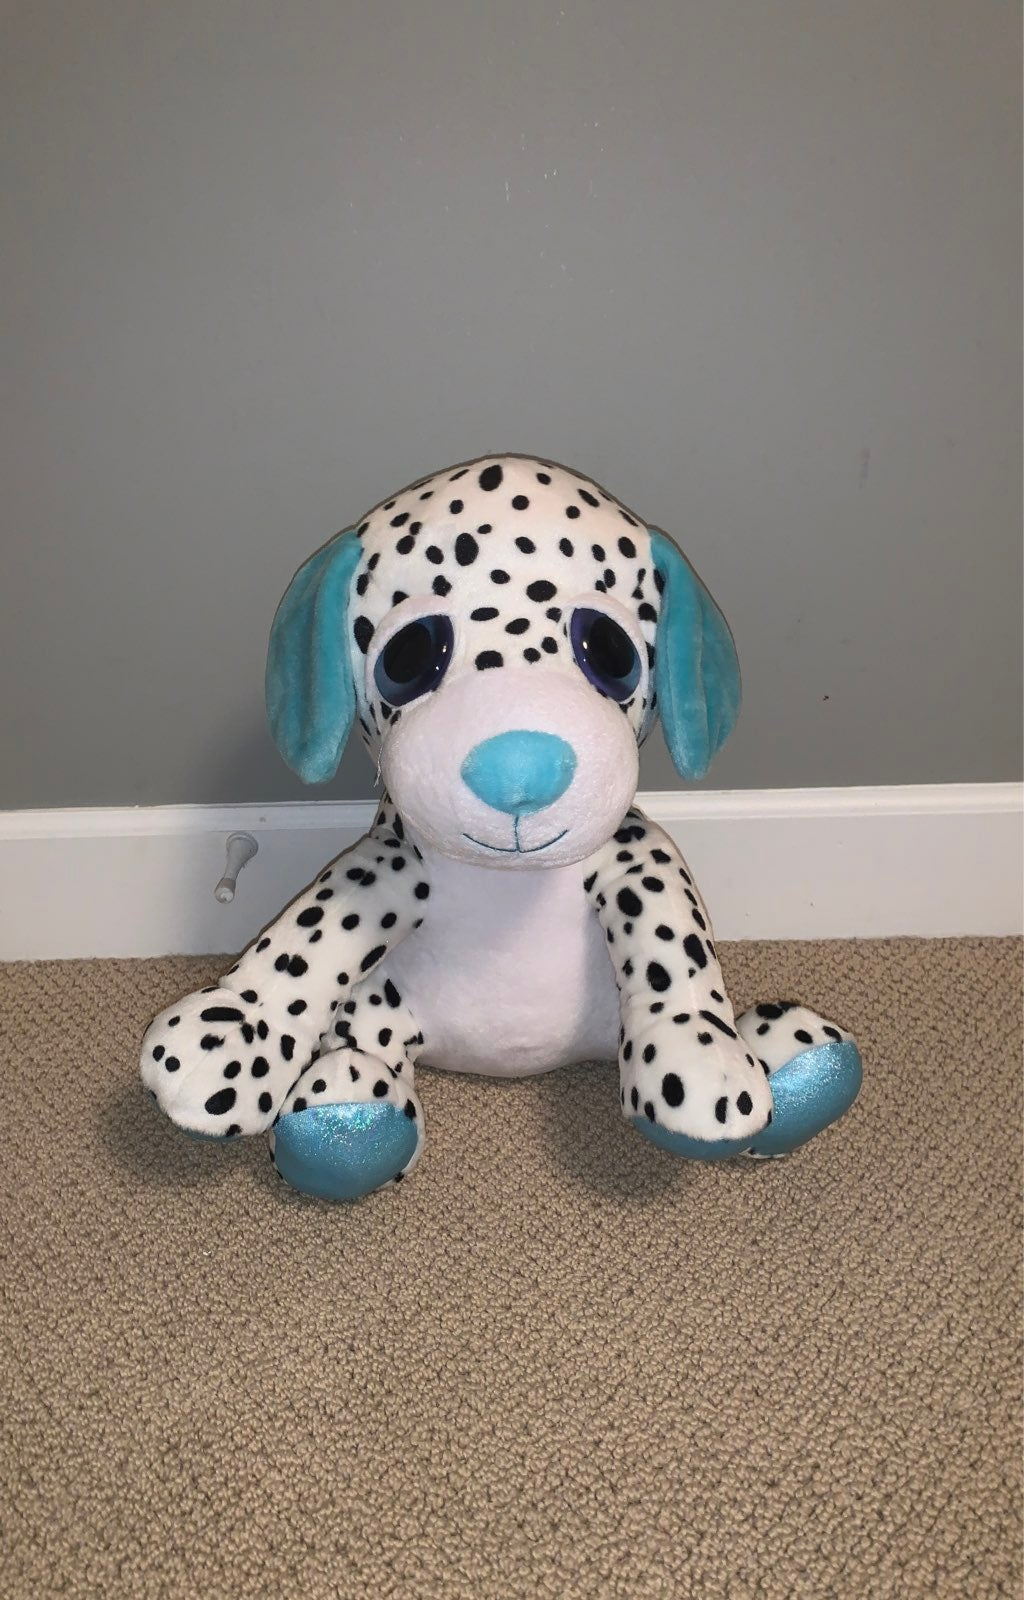 A bog white Polkadotted dog is in great